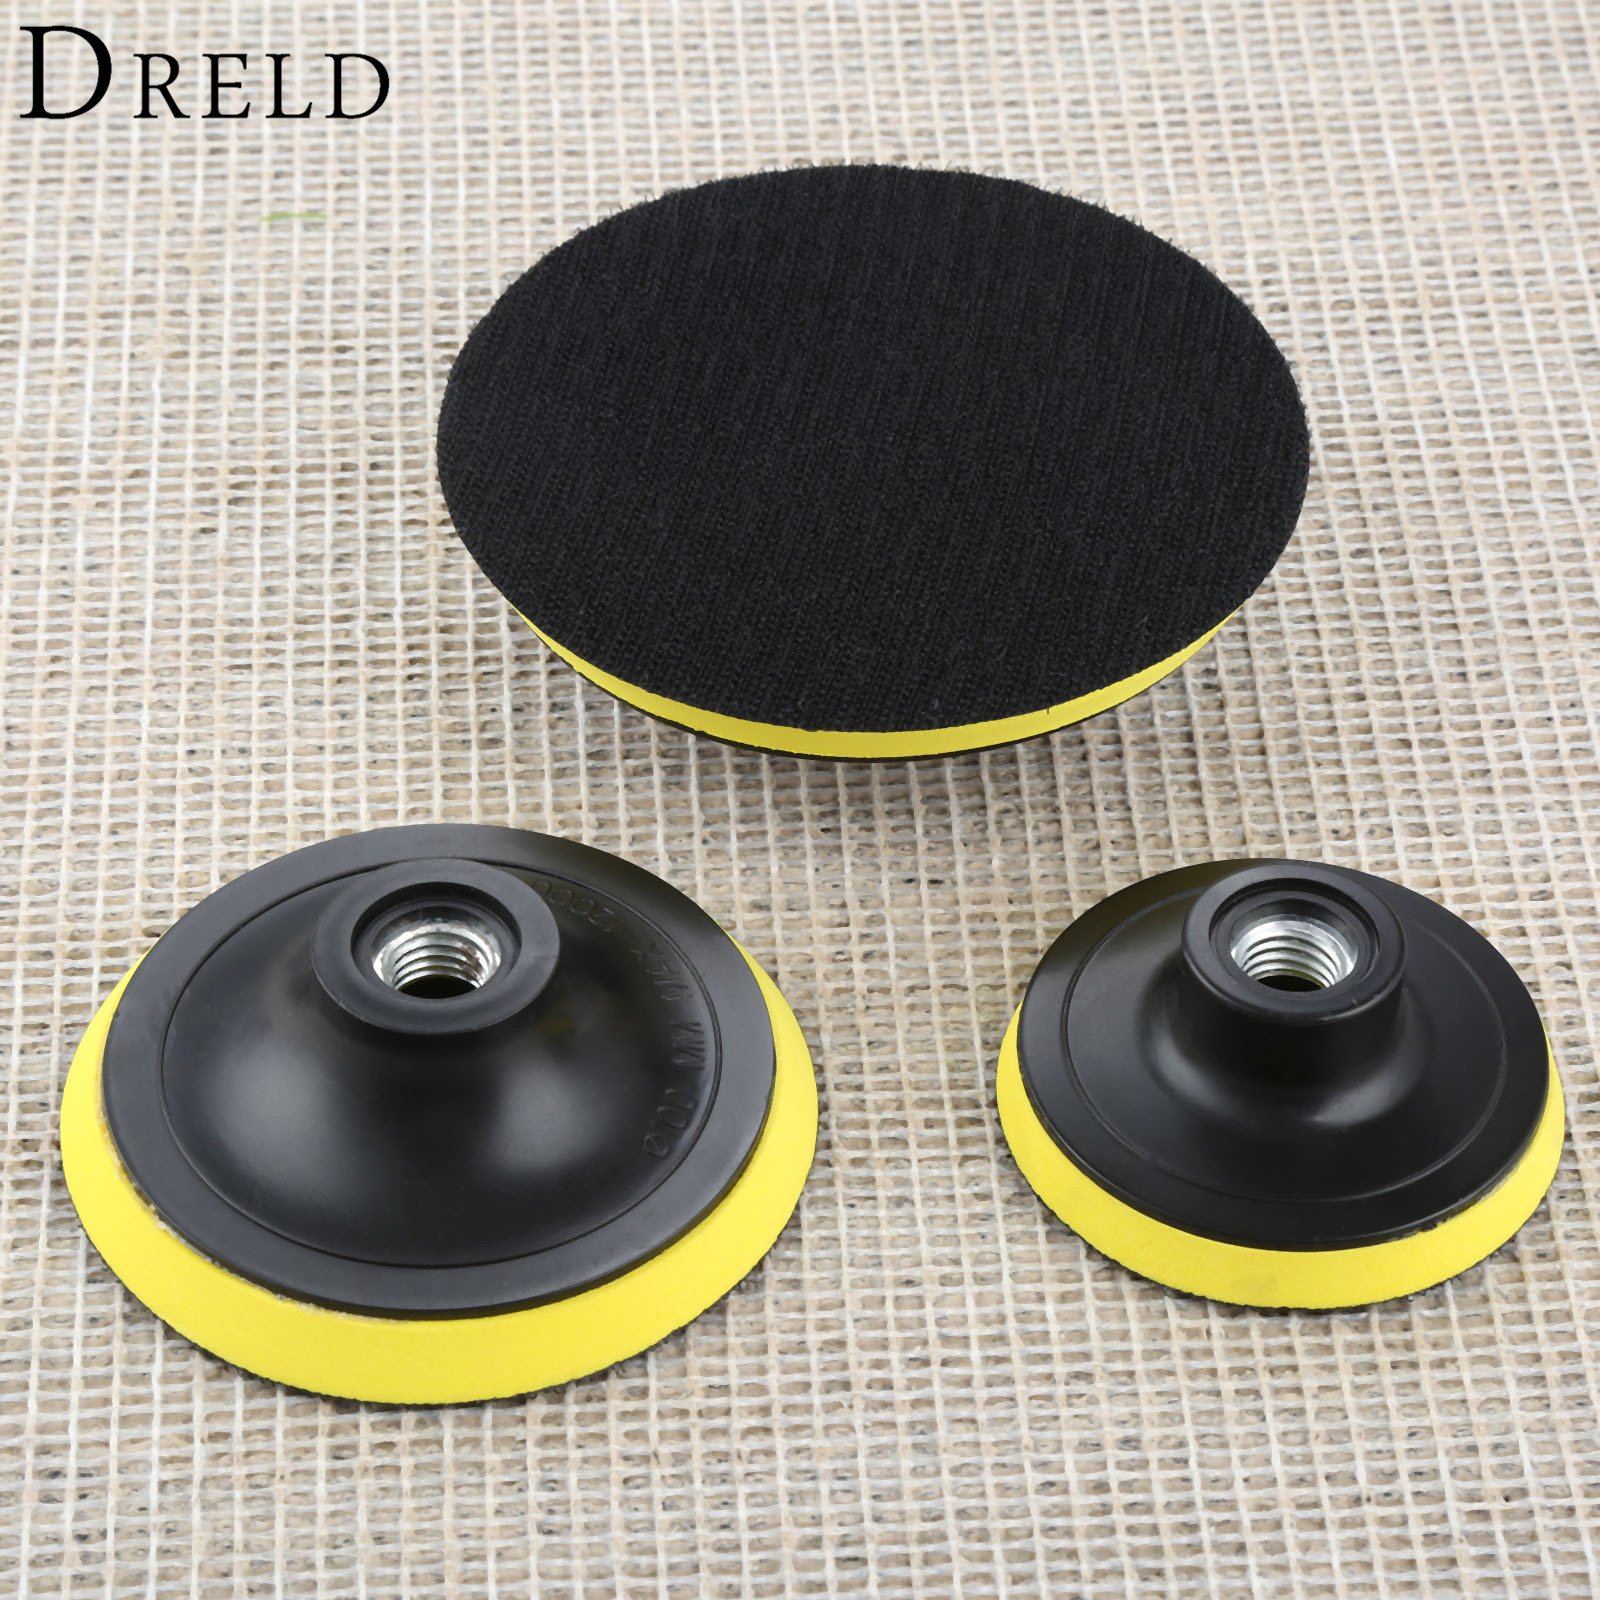 DRELD 1pc 3/4/5 Inch Car M14 Backing Plate Pad Hook Loop Polishing Buffing Pad Dia.75mm 100mm 125mm